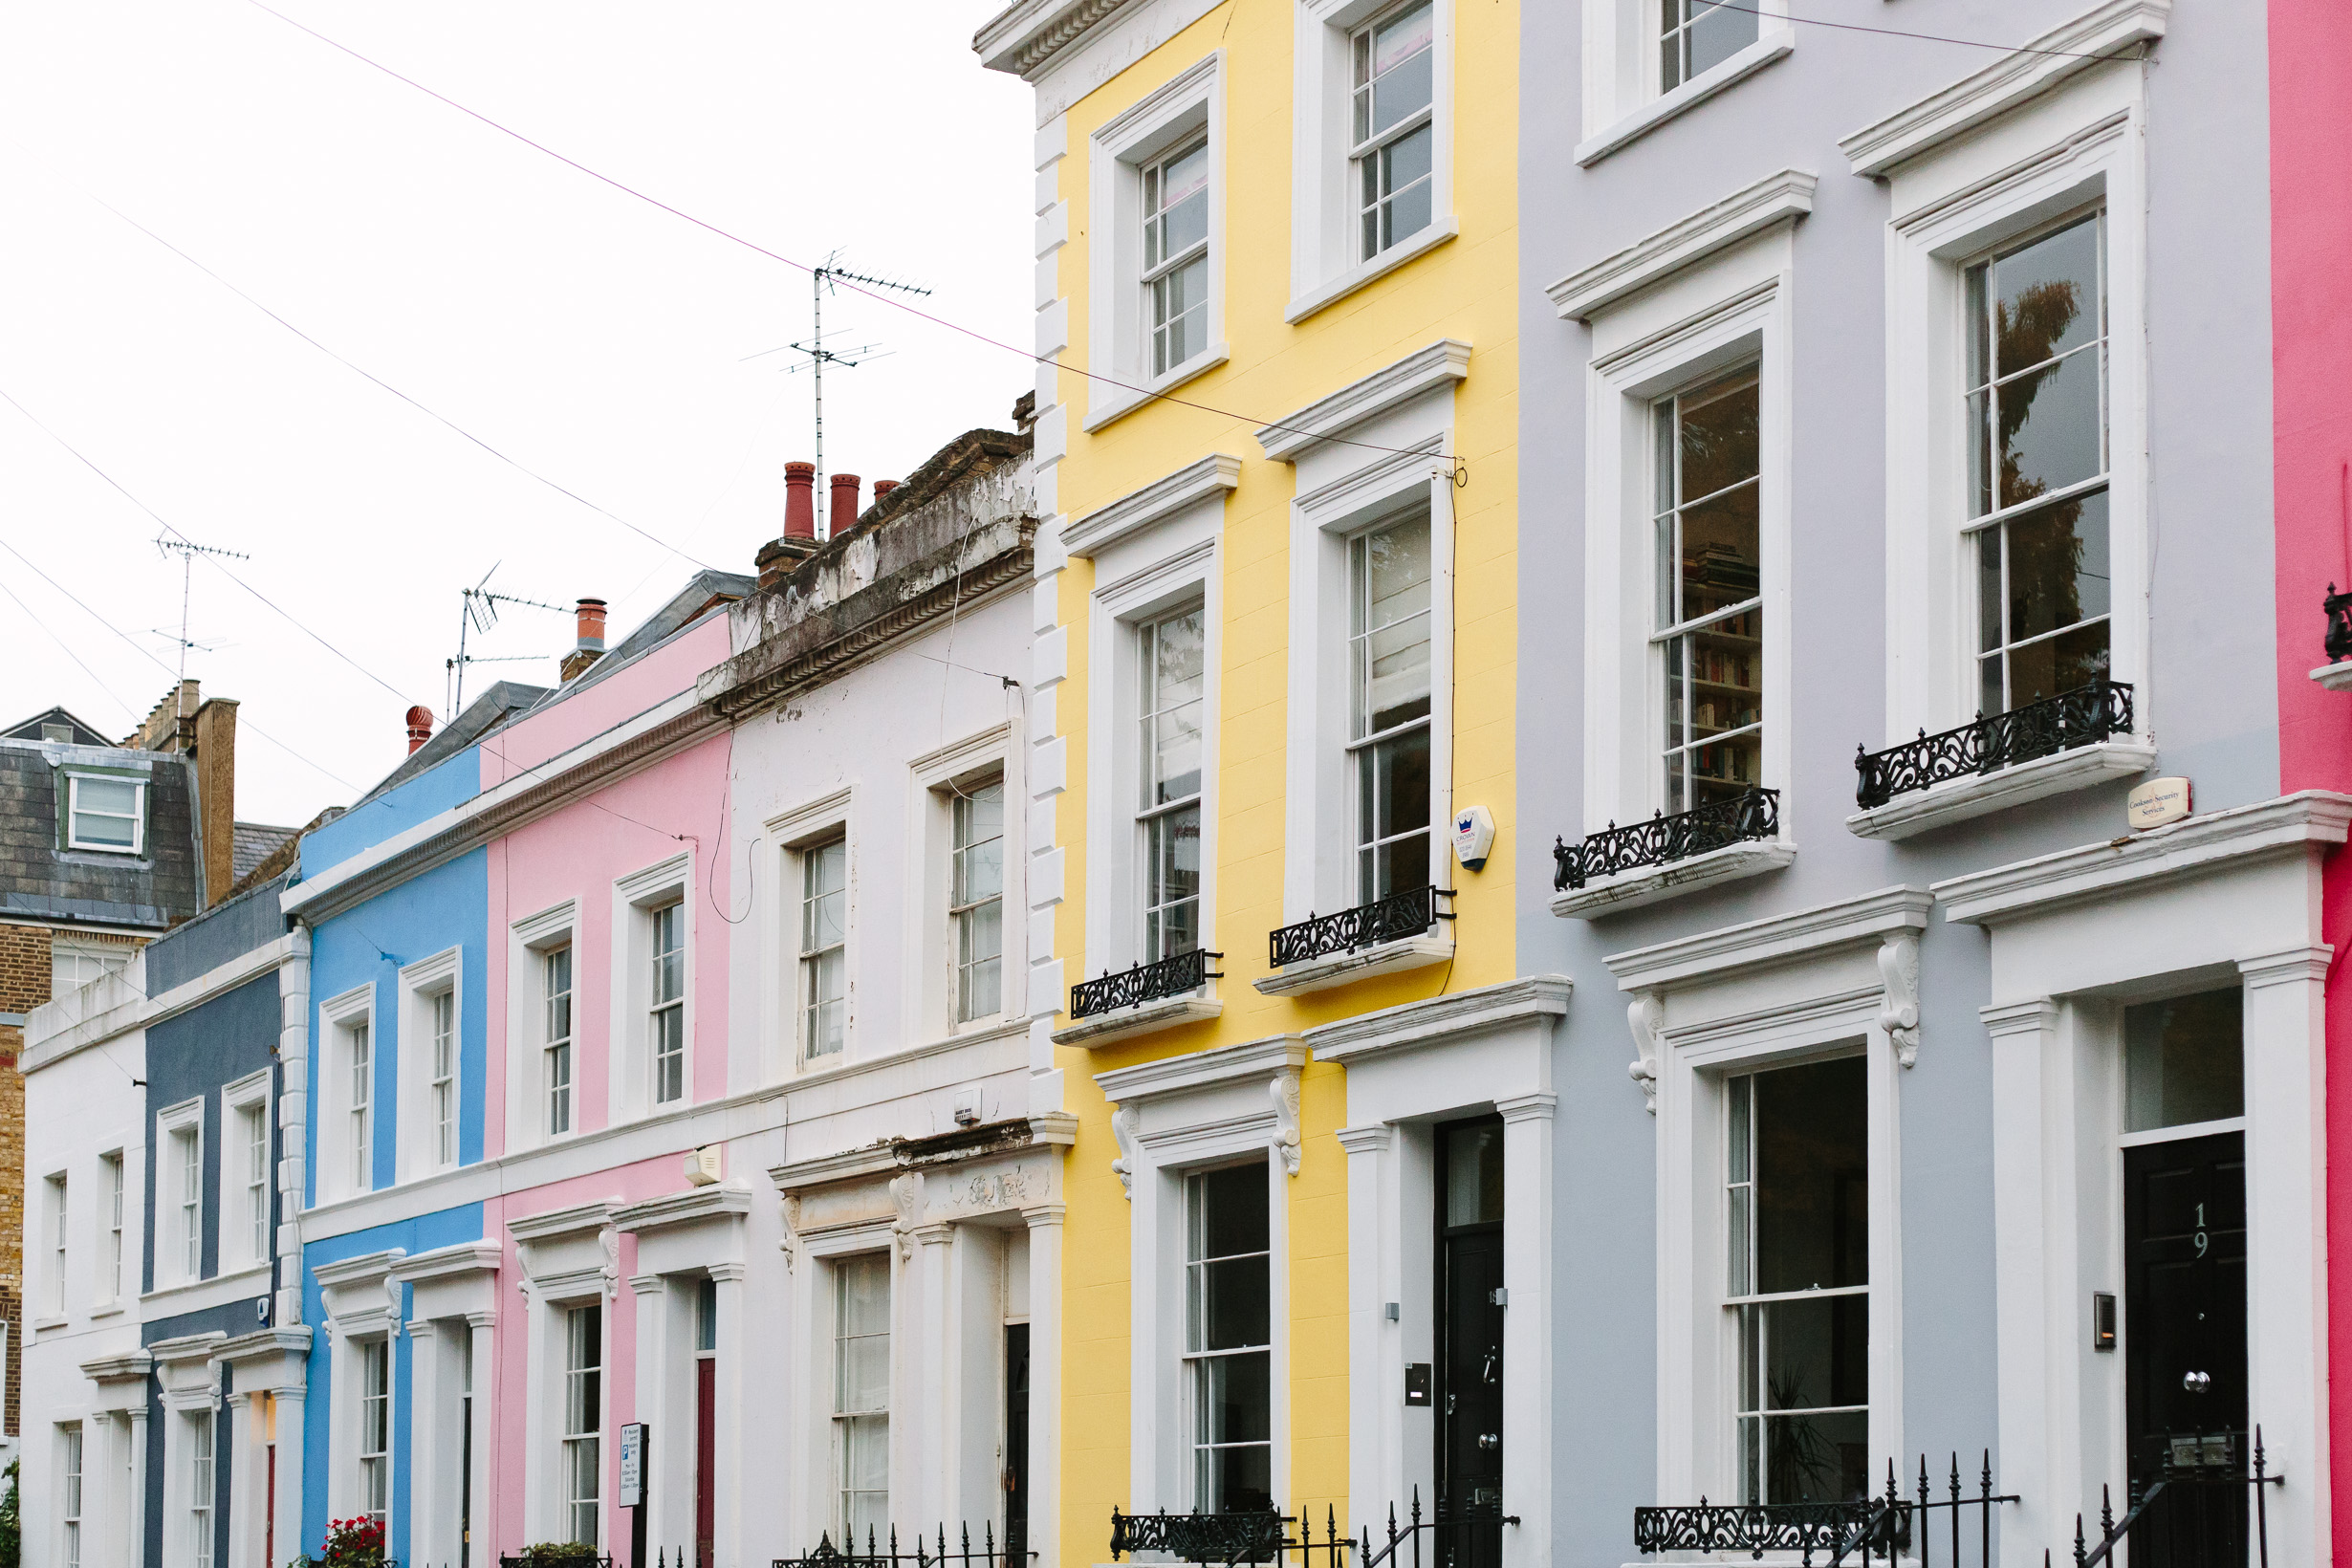 colorful-houses-in-notting-hill-4781